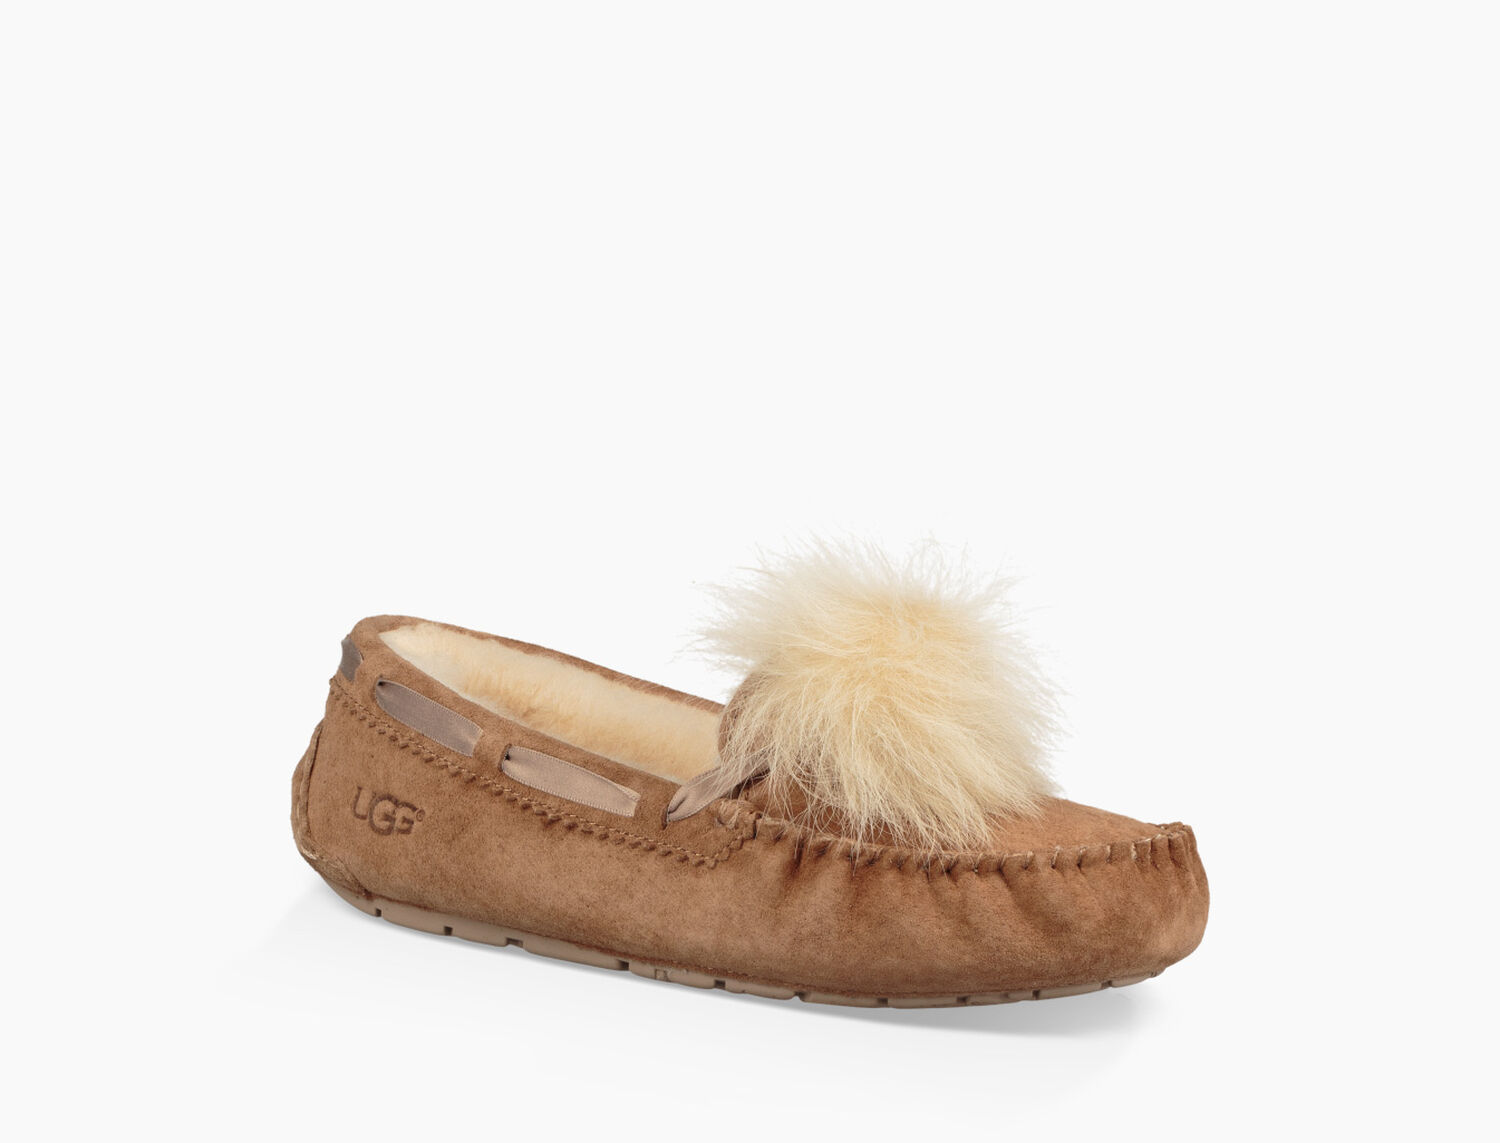 d94ce0a400a Women's Share this product Dakota Pom Pom Slipper